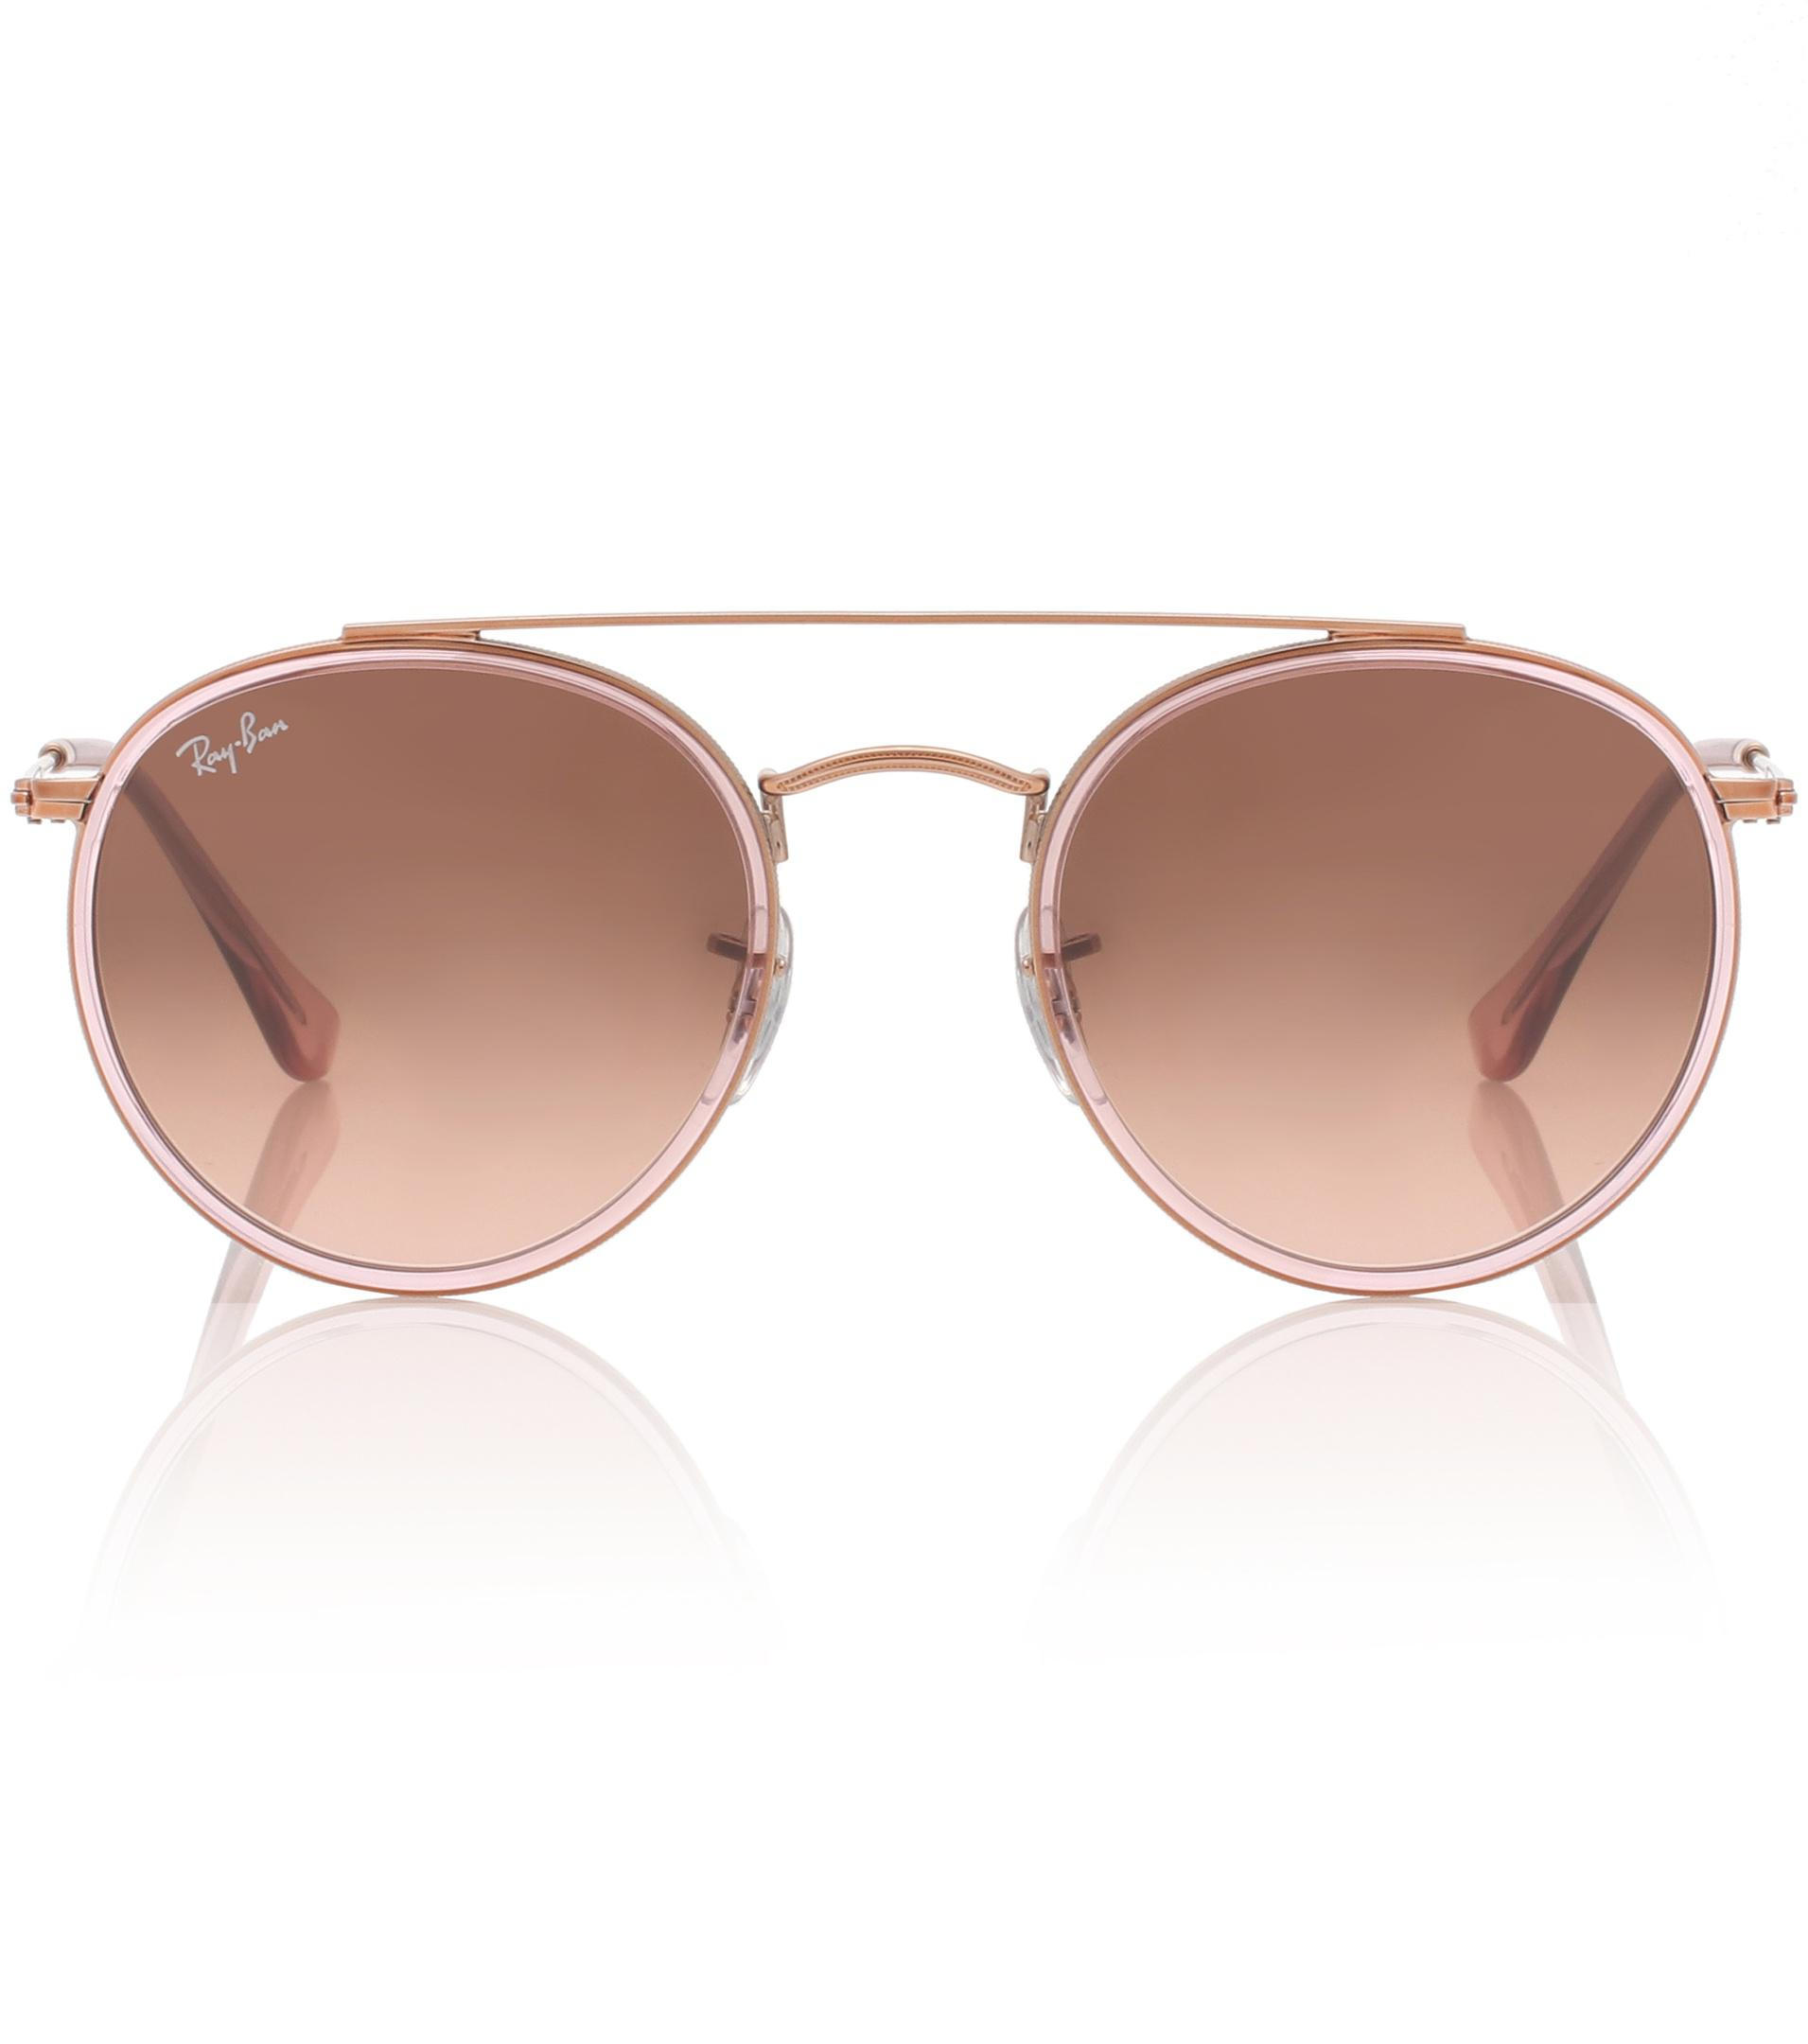 d3052d4777 Ray-Ban Round Double Bridge Sunglasses in Pink - Lyst